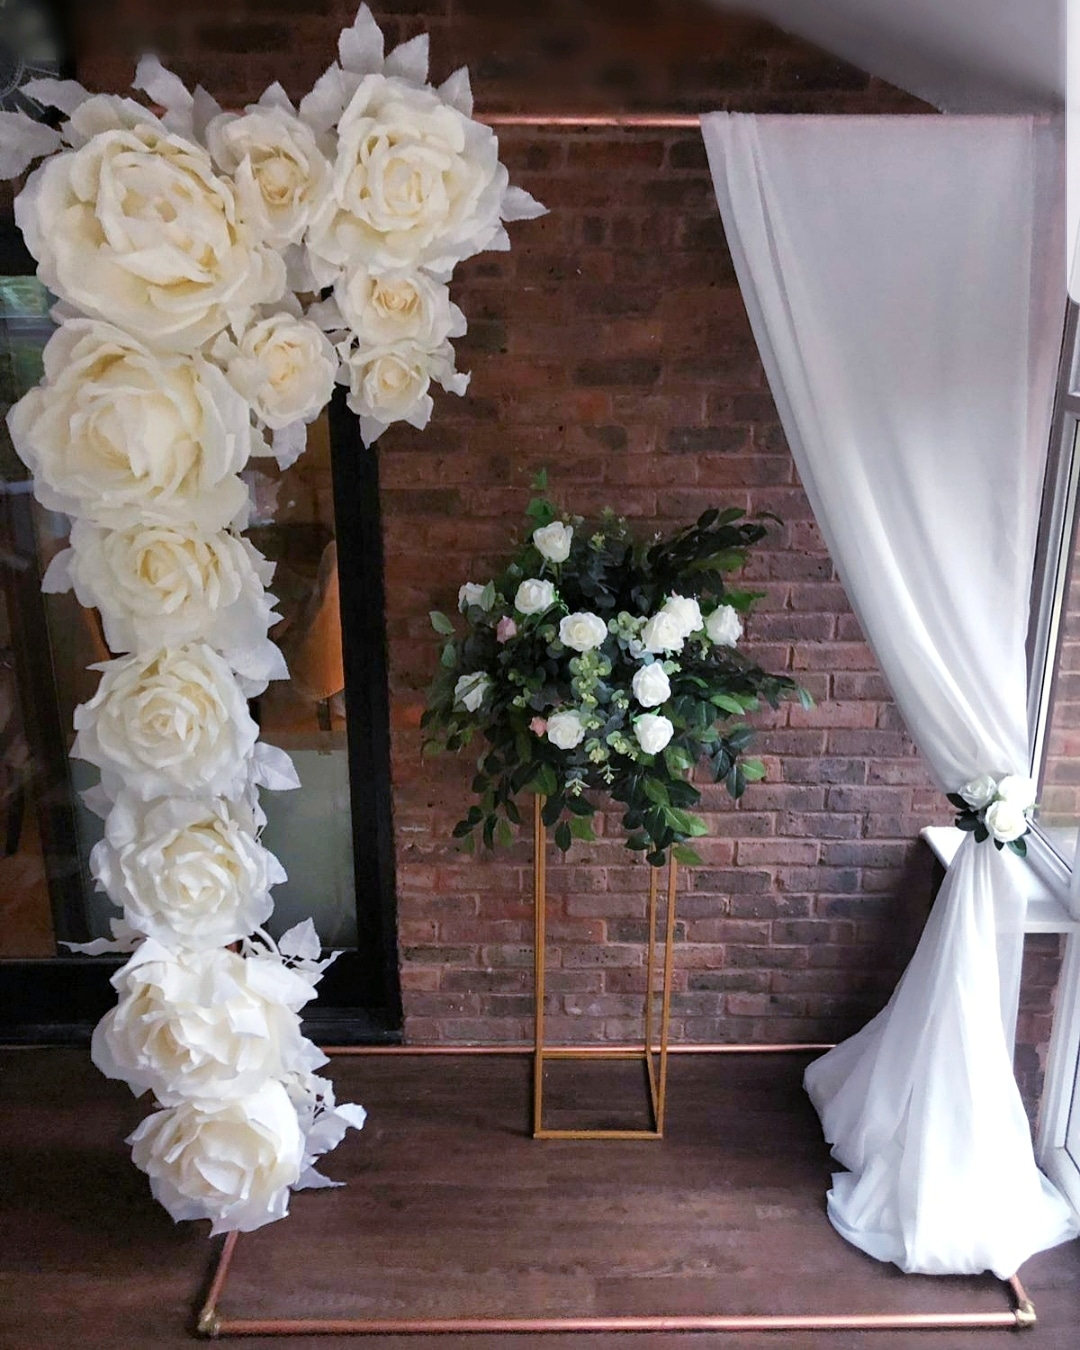 Copper frame - Our copper frame can be dressed with our large ivory roses and drapes, or covered with an array of foliage to create a truly stunning backdrop for your event.Also this frame can be teamed with our White Neon flex 'Happily ever after' signSize of copper frame is 220cm tall x 160cm wide x 90 cm deep